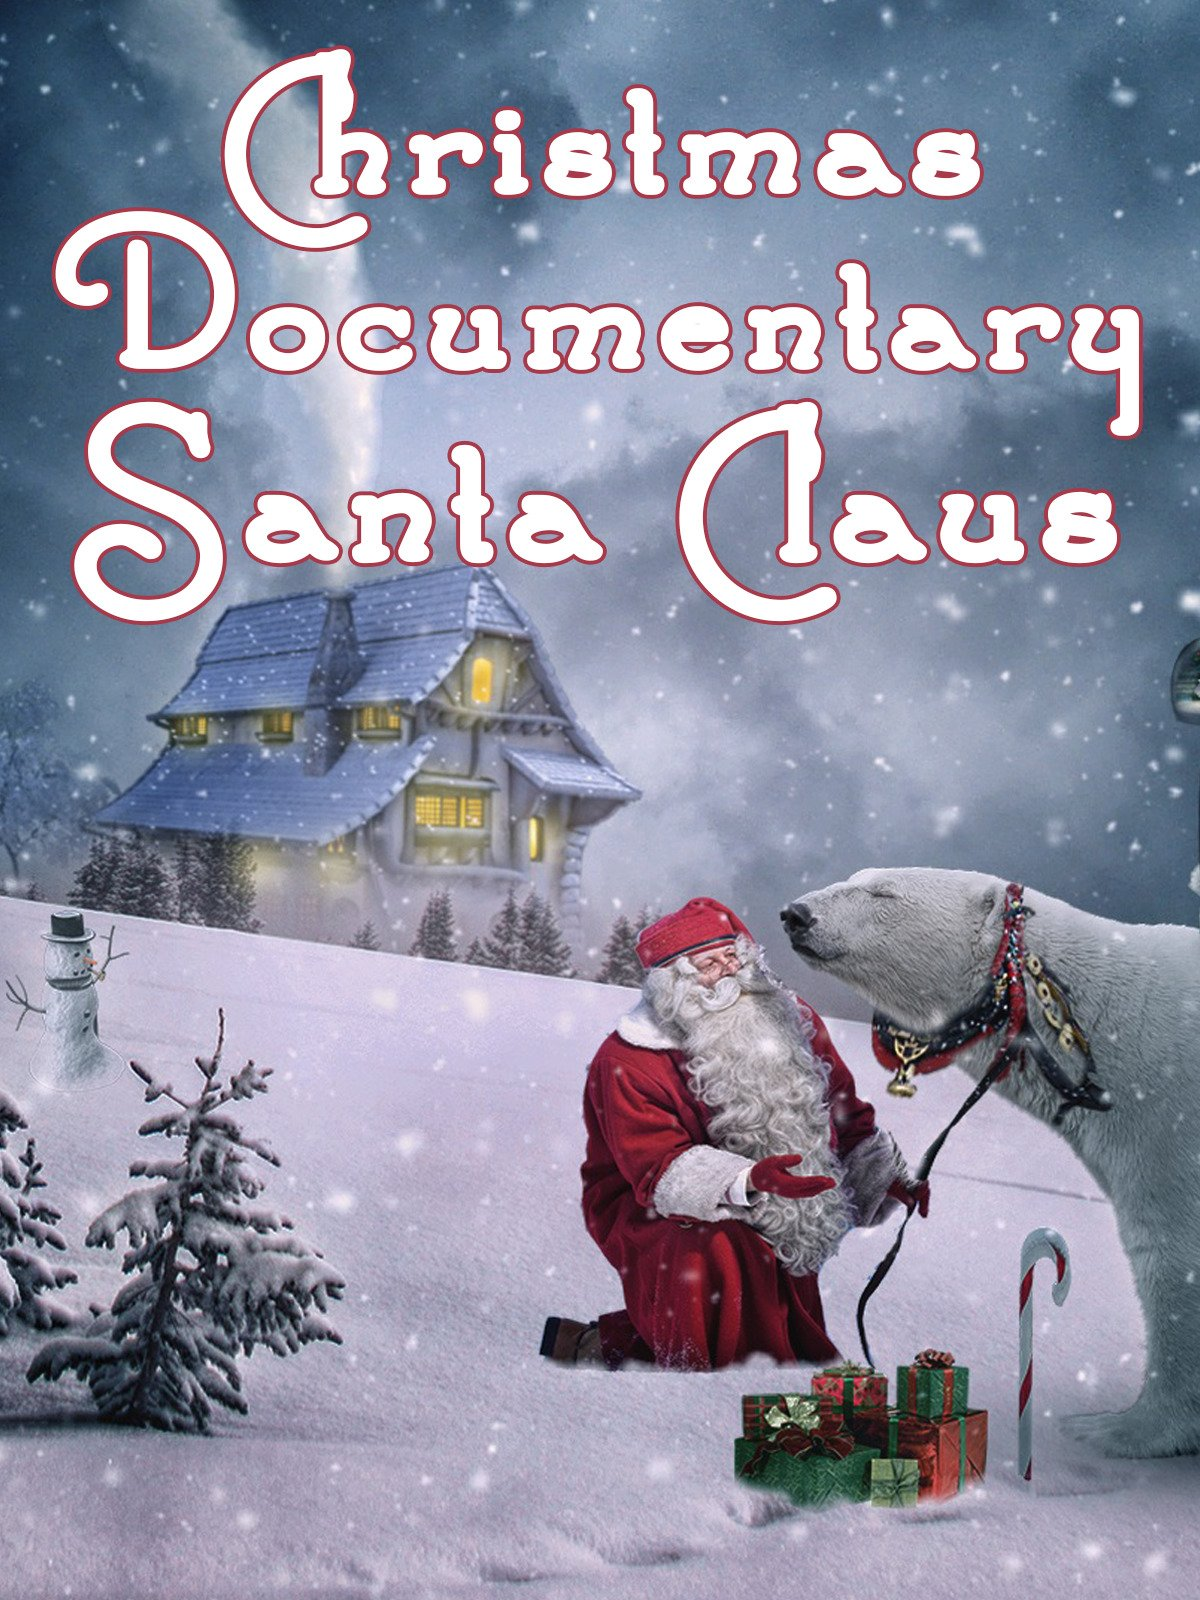 Christmas Documentary Santa Claus